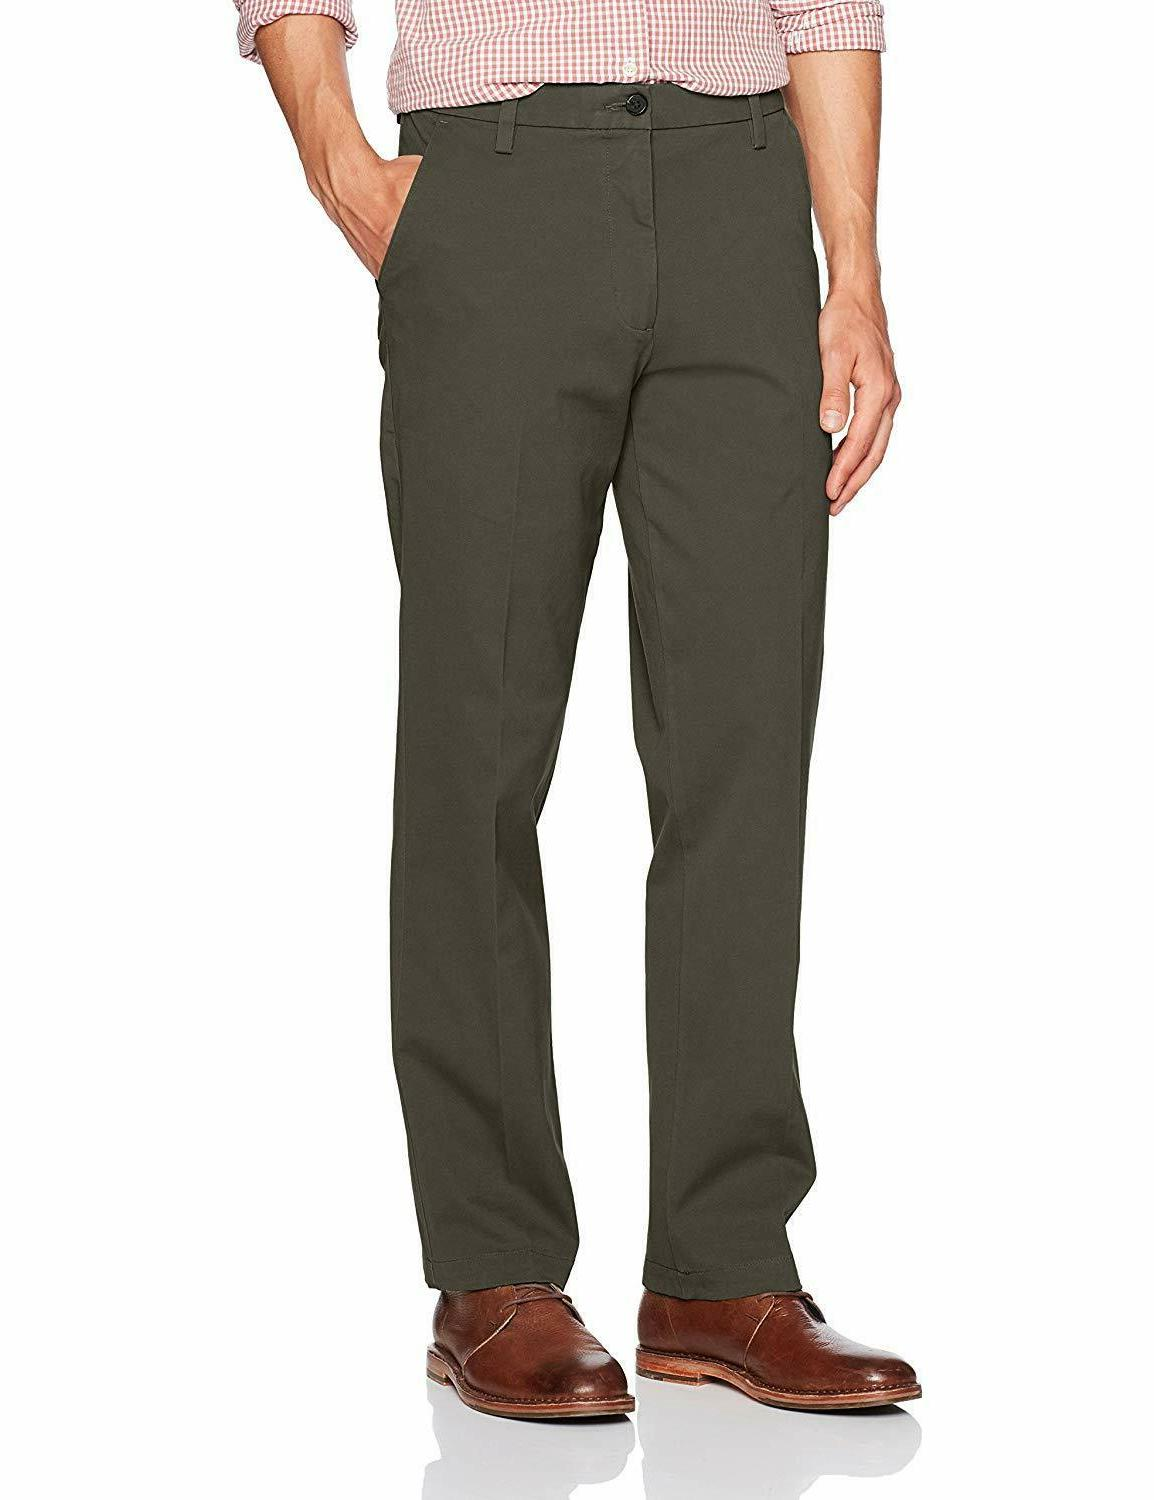 Dockers Mens Straight Fit Workday Khaki Pants Smart 360 Flex